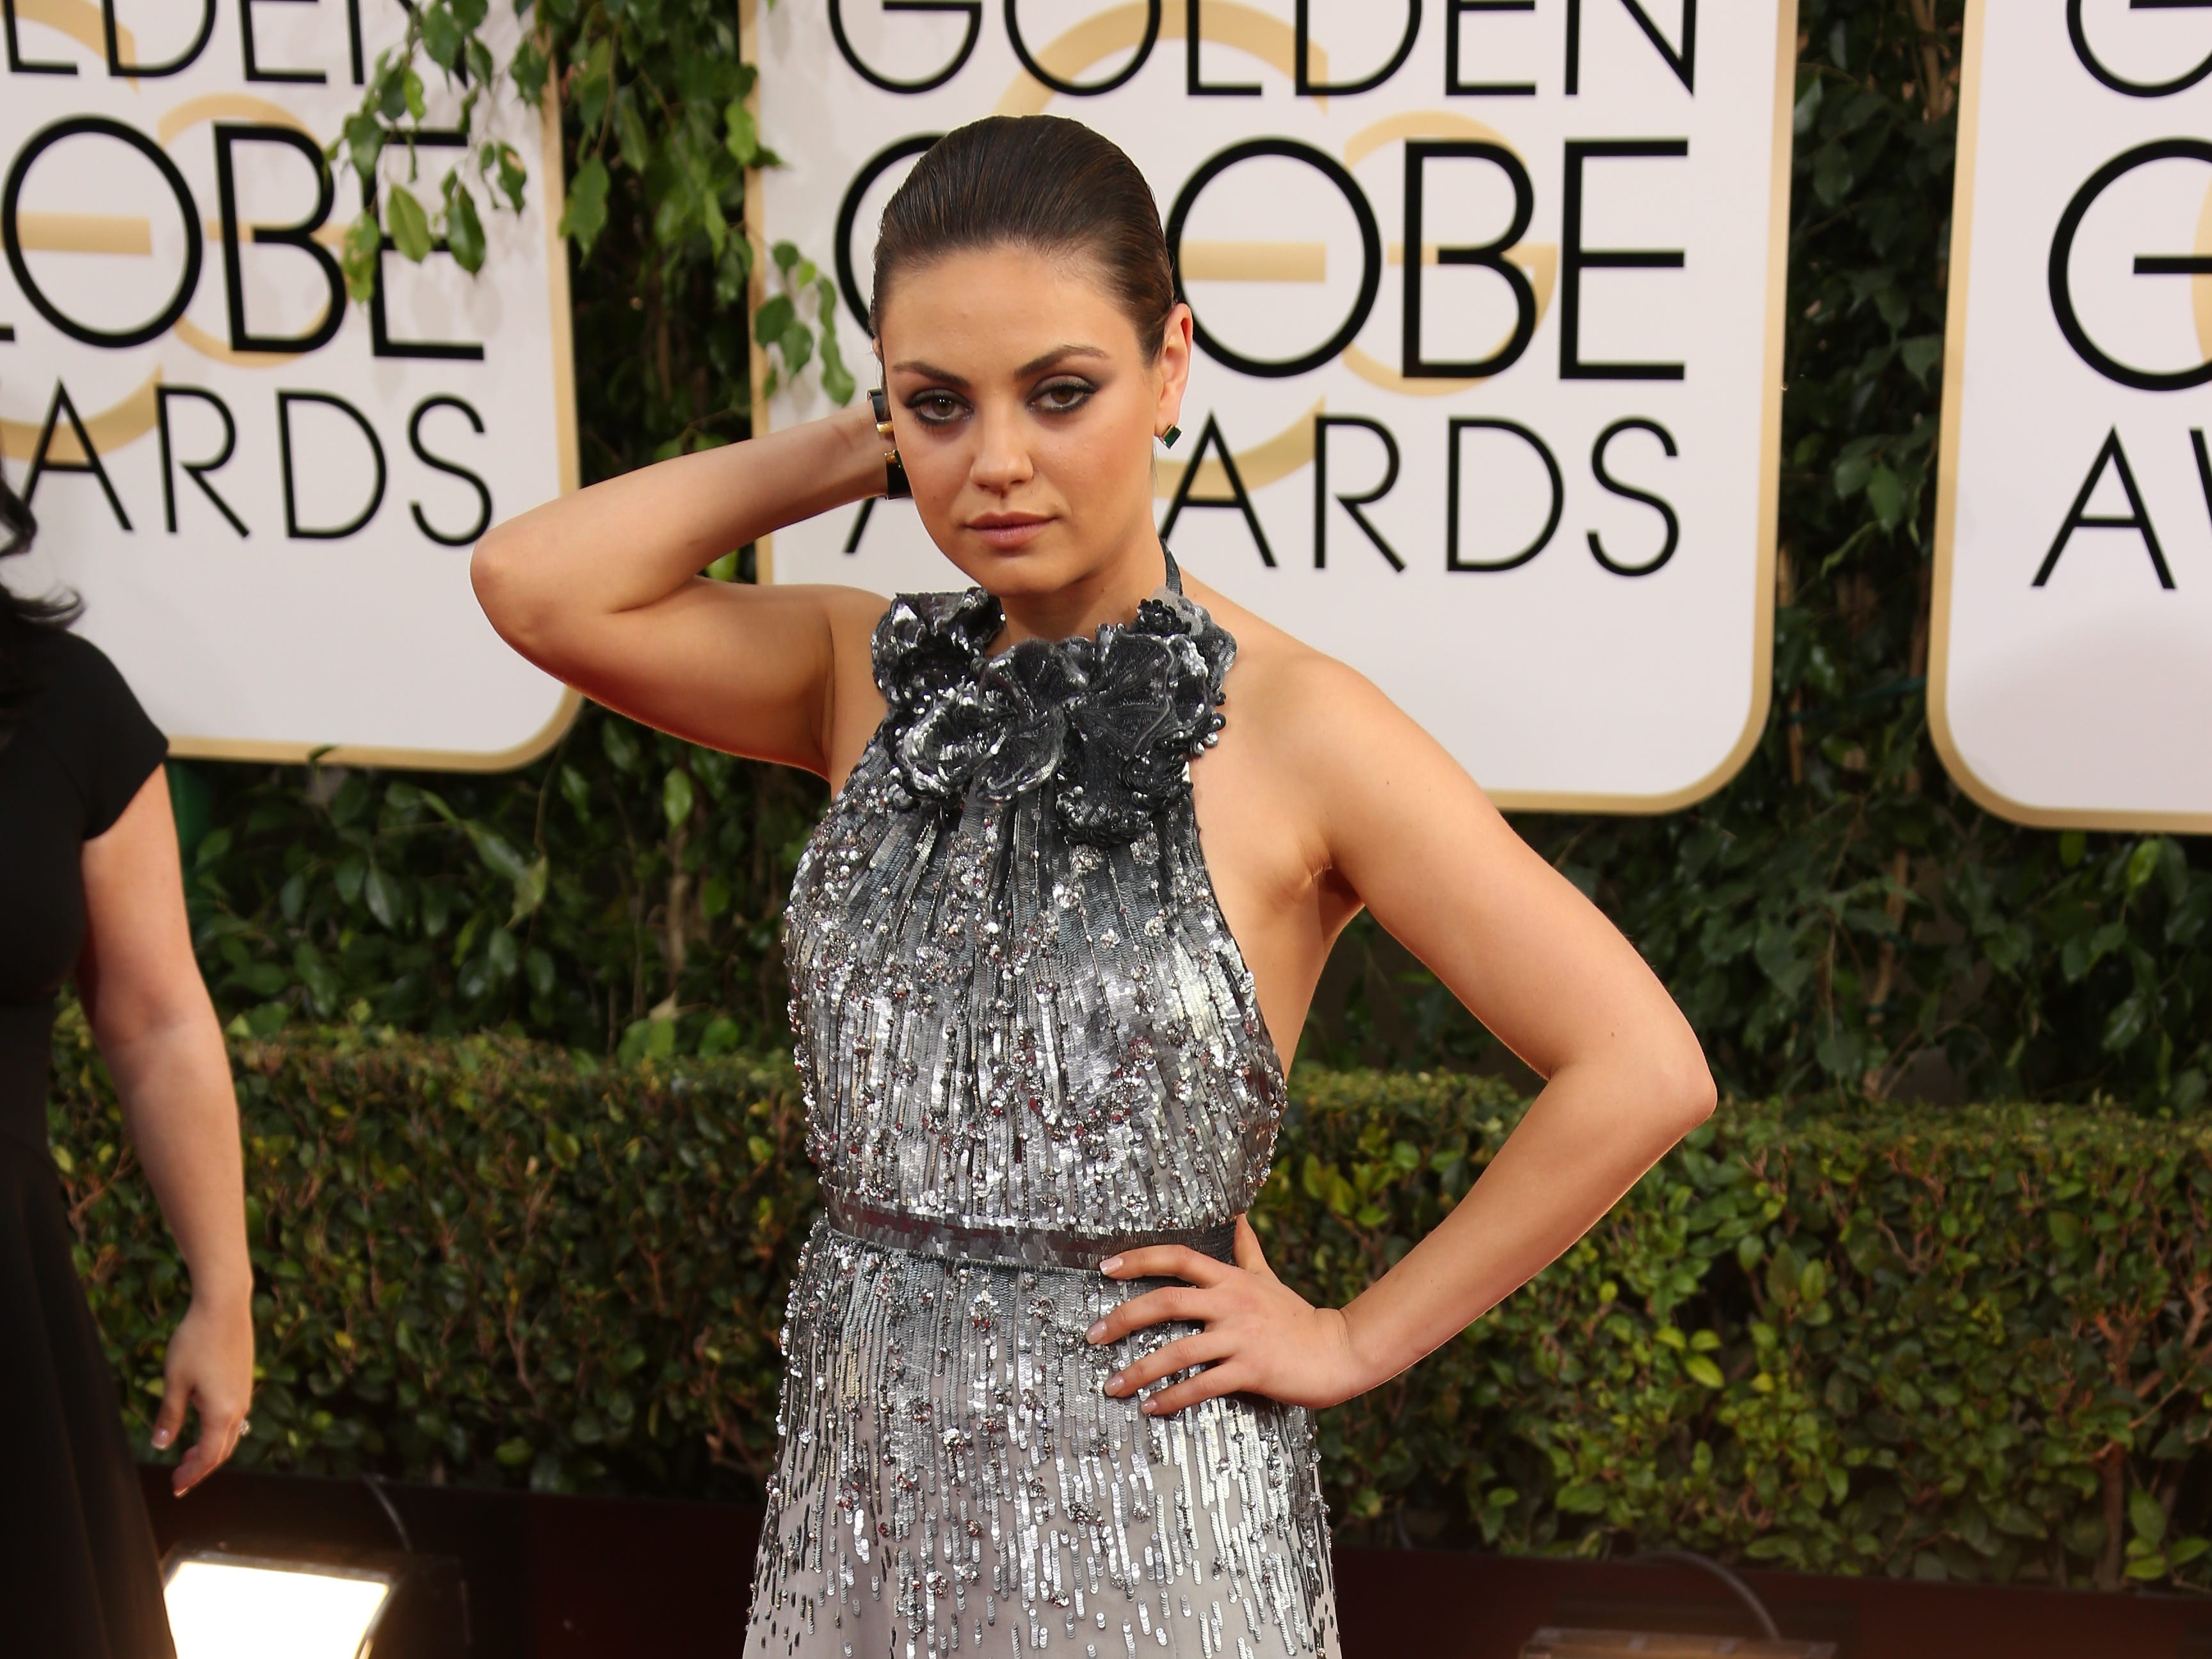 1/12/14 5:20:00 PM -- Beverly Hills, CA, U.S.A  --  Mila Kunis arrives at the 71st annual Golden Globe Awards in Beverly Hills, CA --    Photo by Dan MacMedan, USA TODAY contract photographer  ORG XMIT:  DM 130549 2014 GOLDEN GLOB 1/11/2014 (Via OlyDrop)